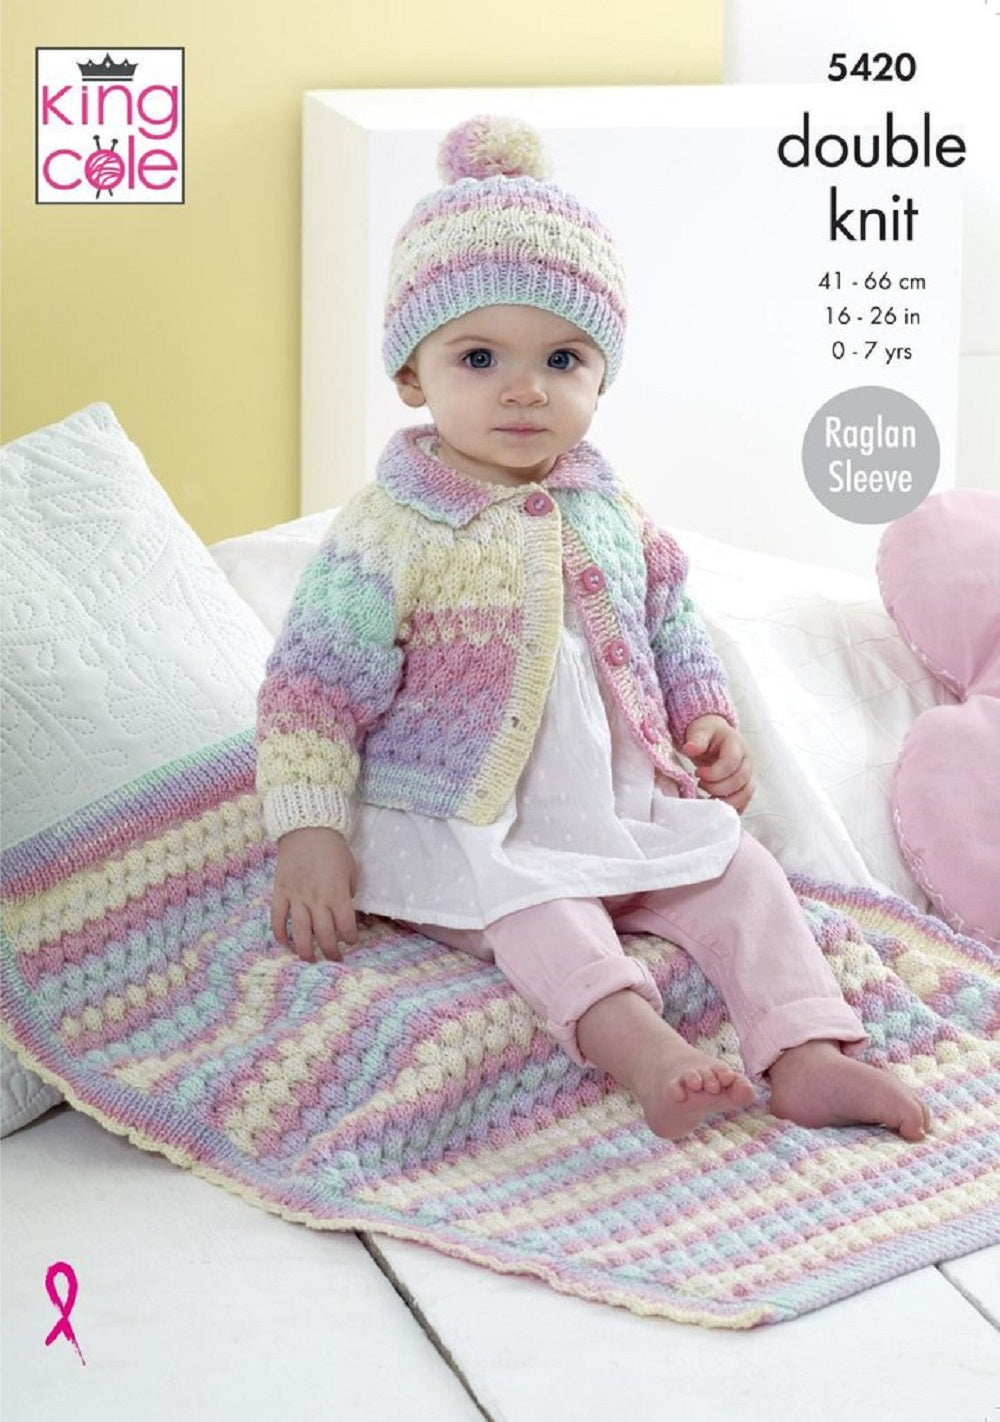 King Cole 5420 Childs Cardigan Hat Blanket Double Knit  Knitting Pattern